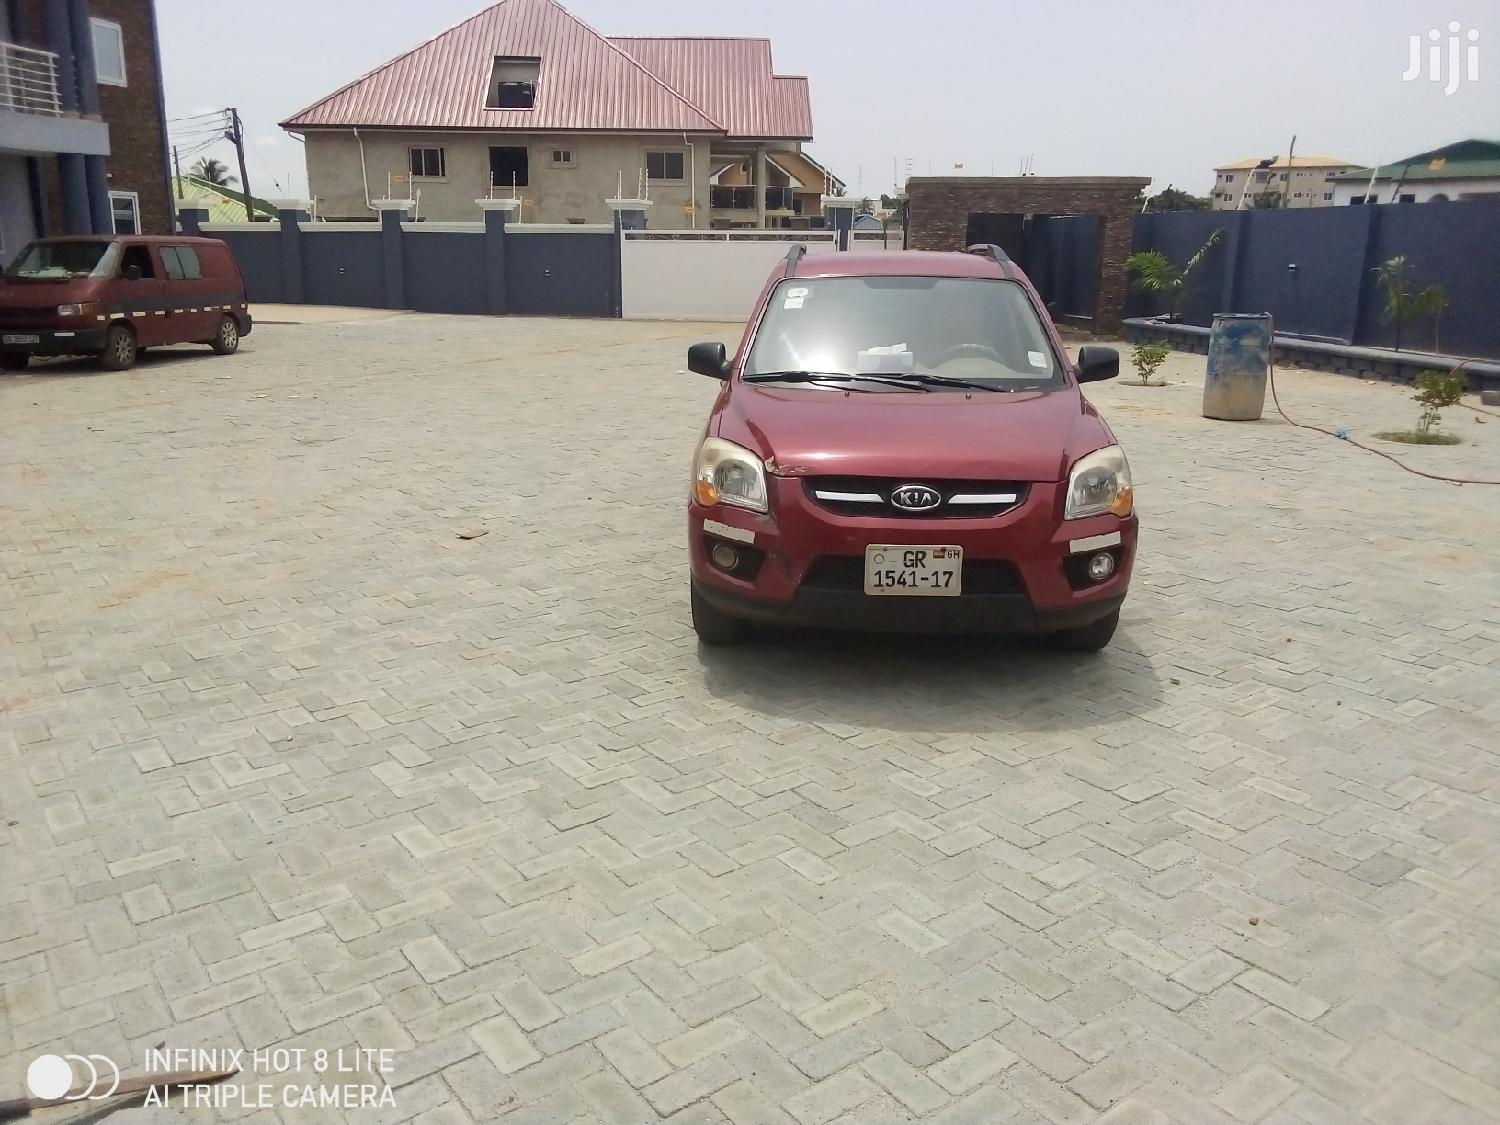 3 Bedrooms Apartment At North Legon   Houses & Apartments For Rent for sale in Achimota, Greater Accra, Ghana